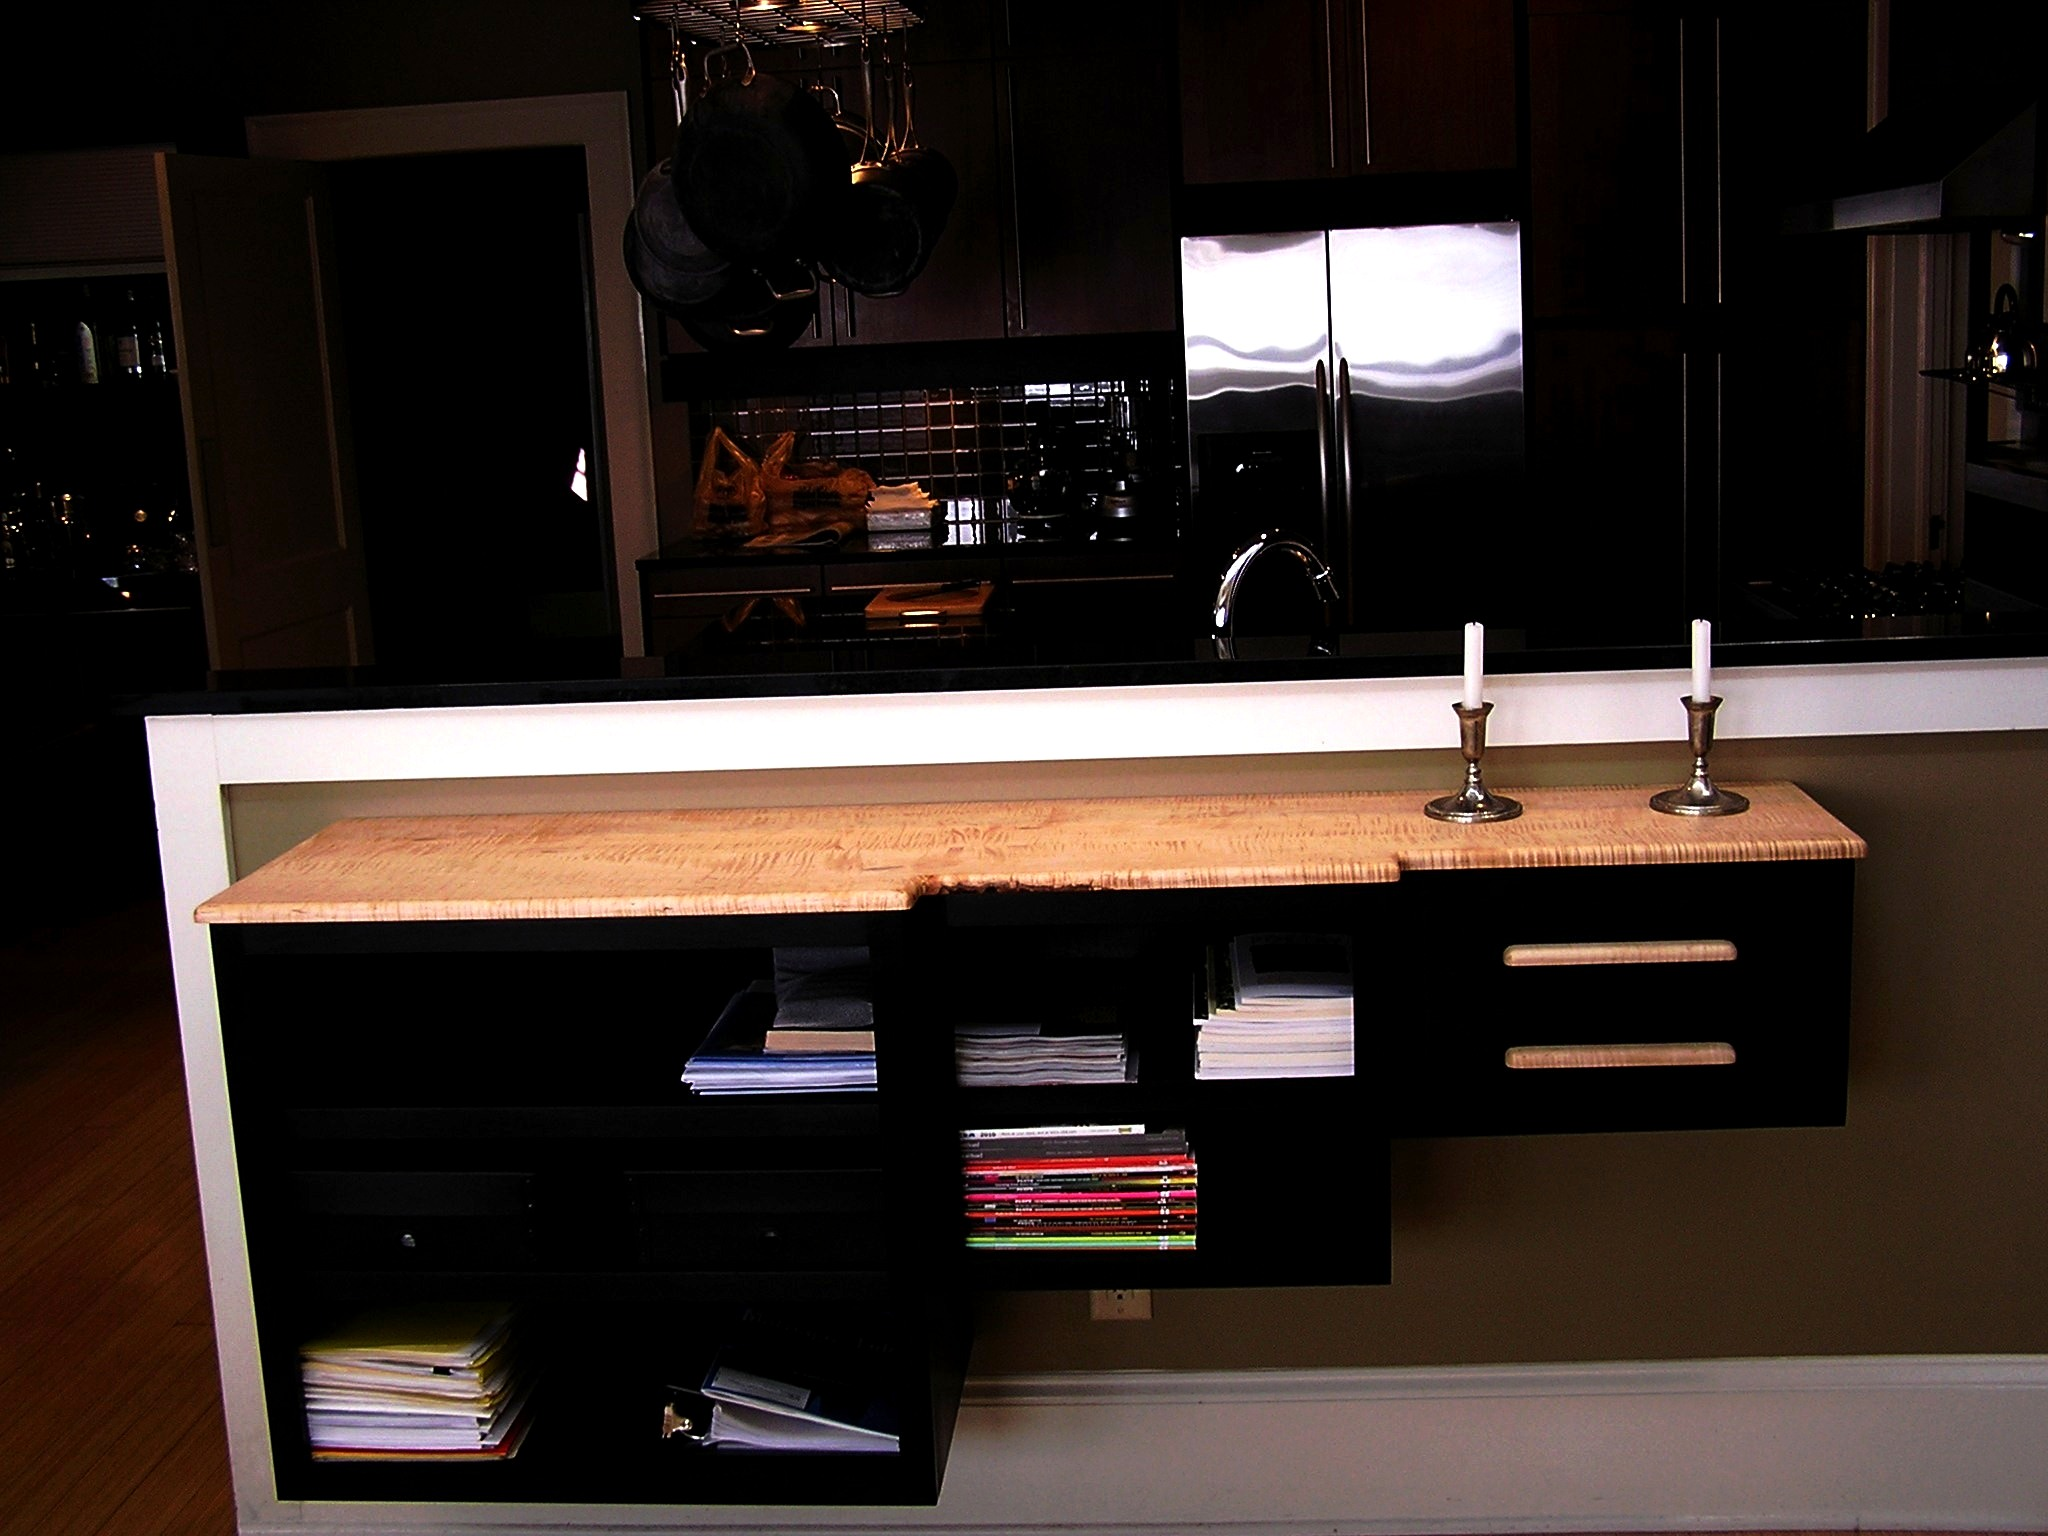 Custom floating shelves